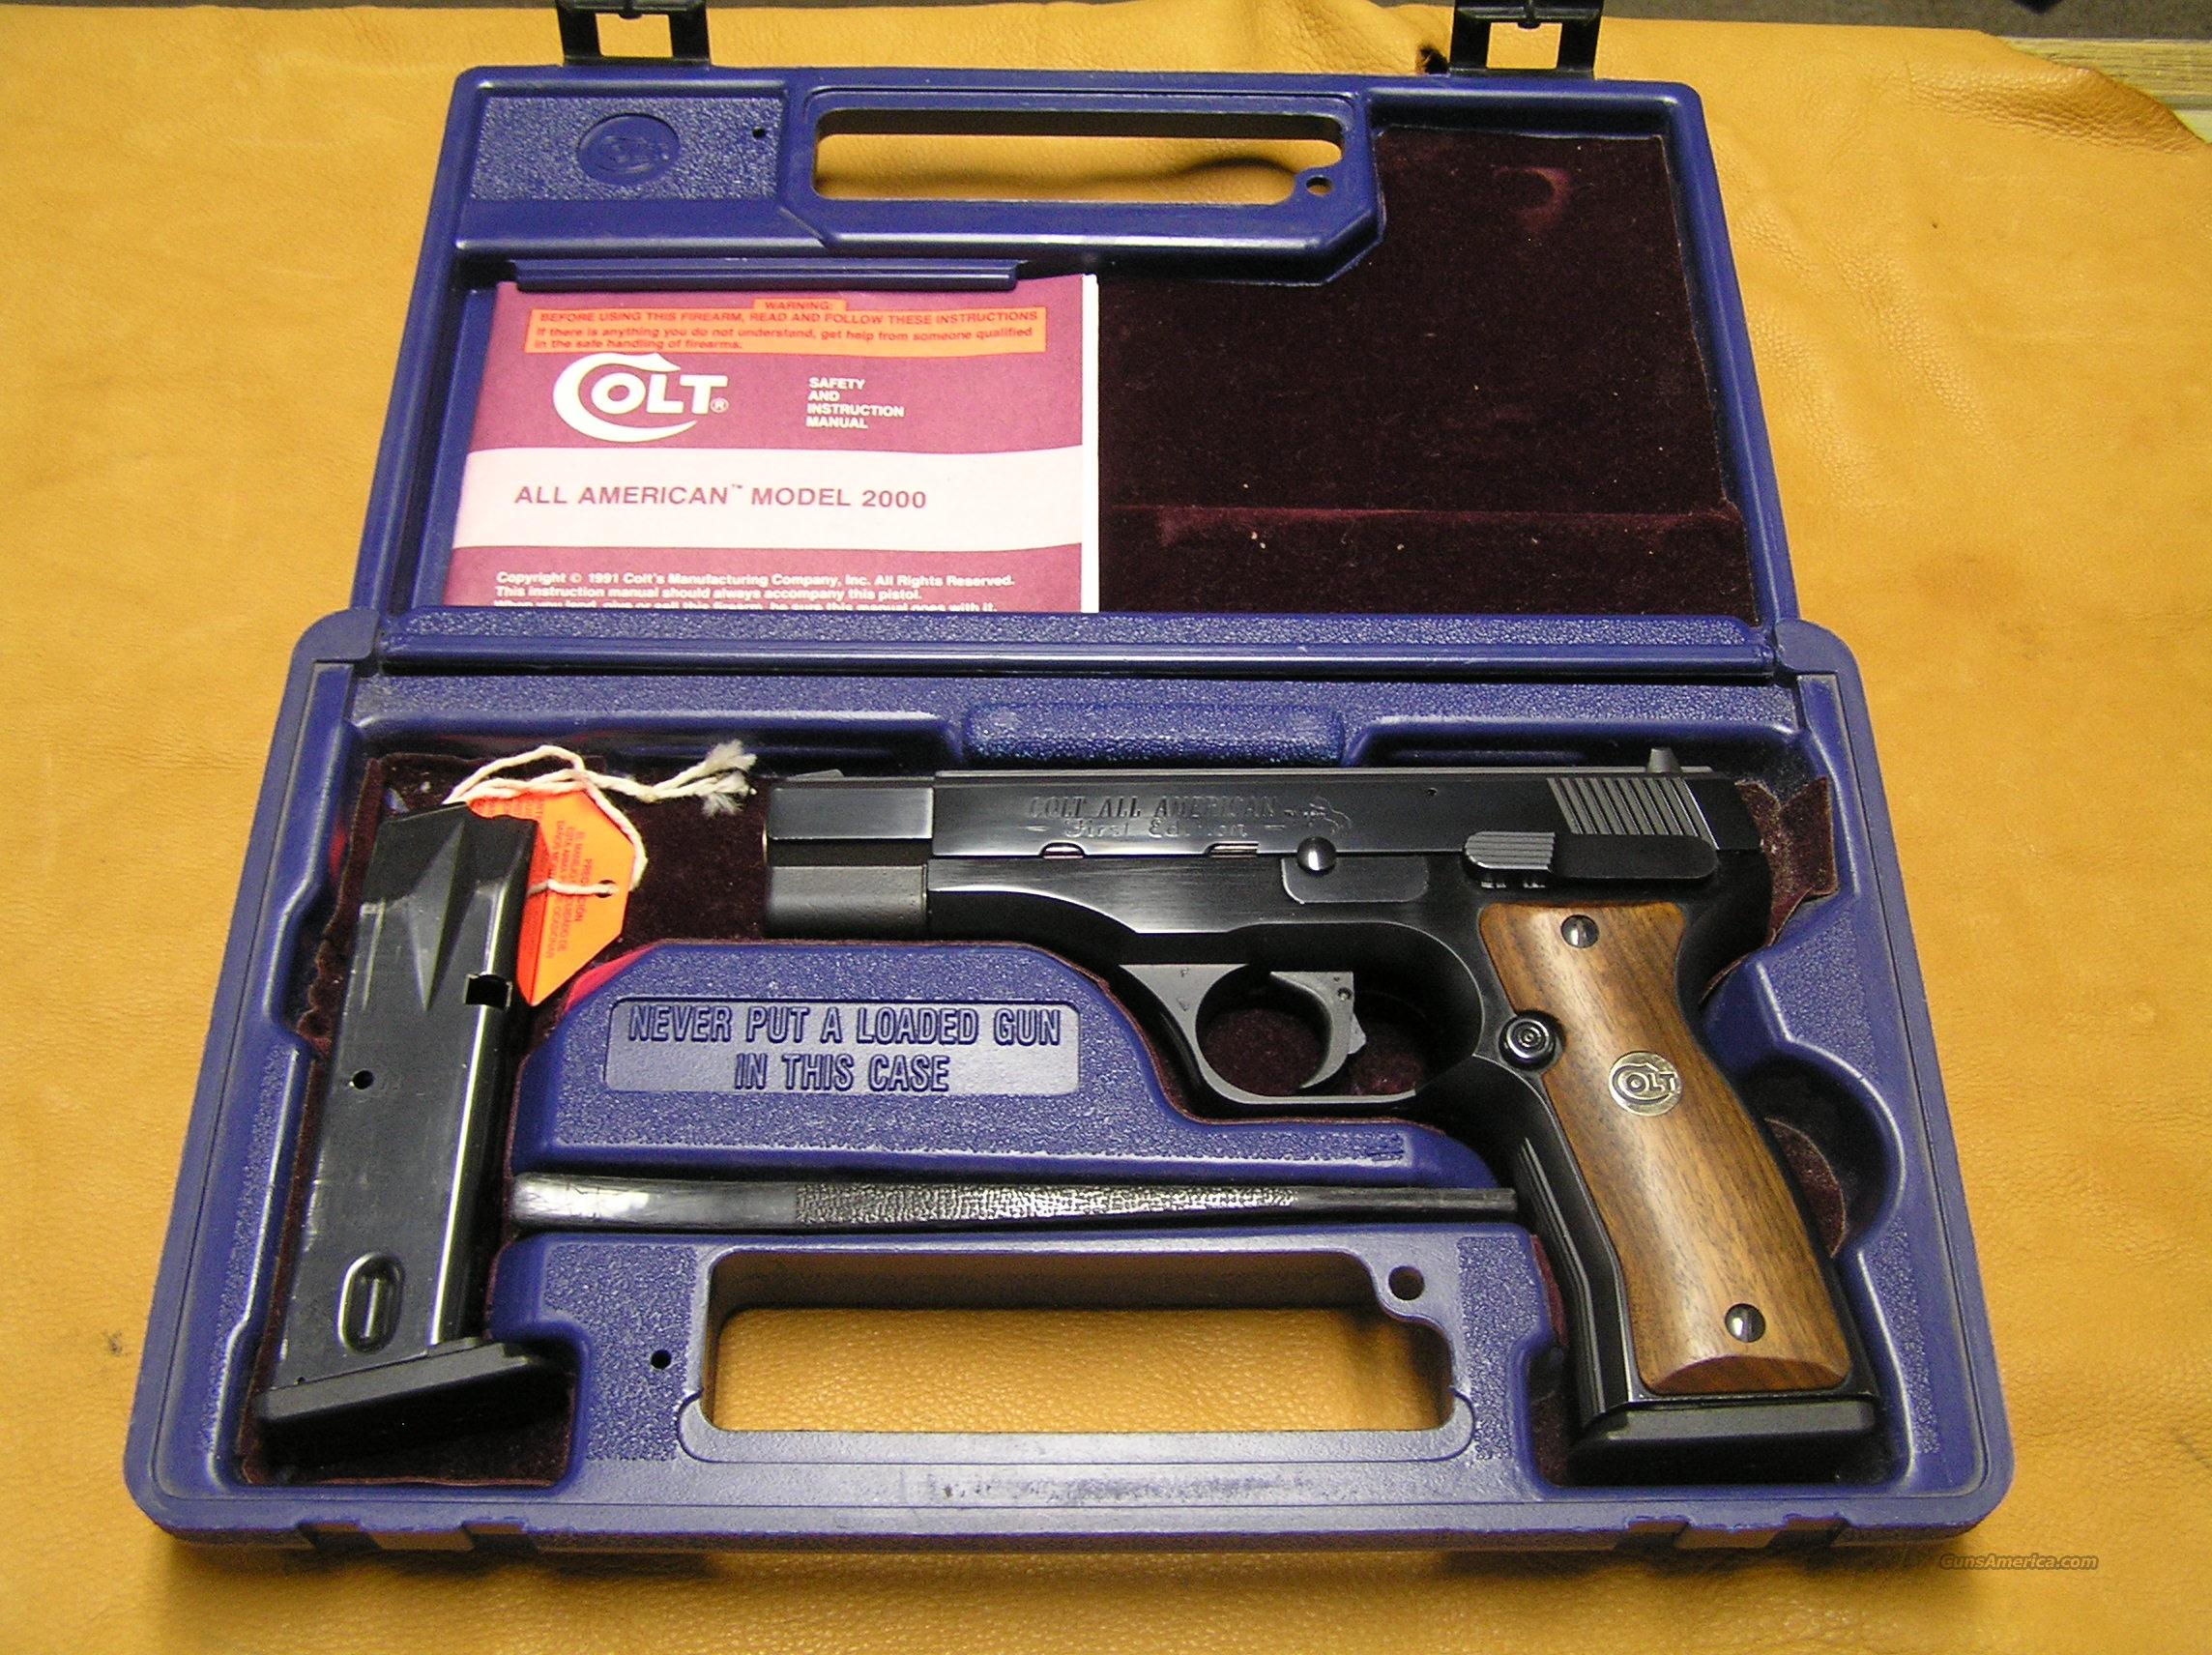 Colt All American Model 2000 9mm First Edition For Sale